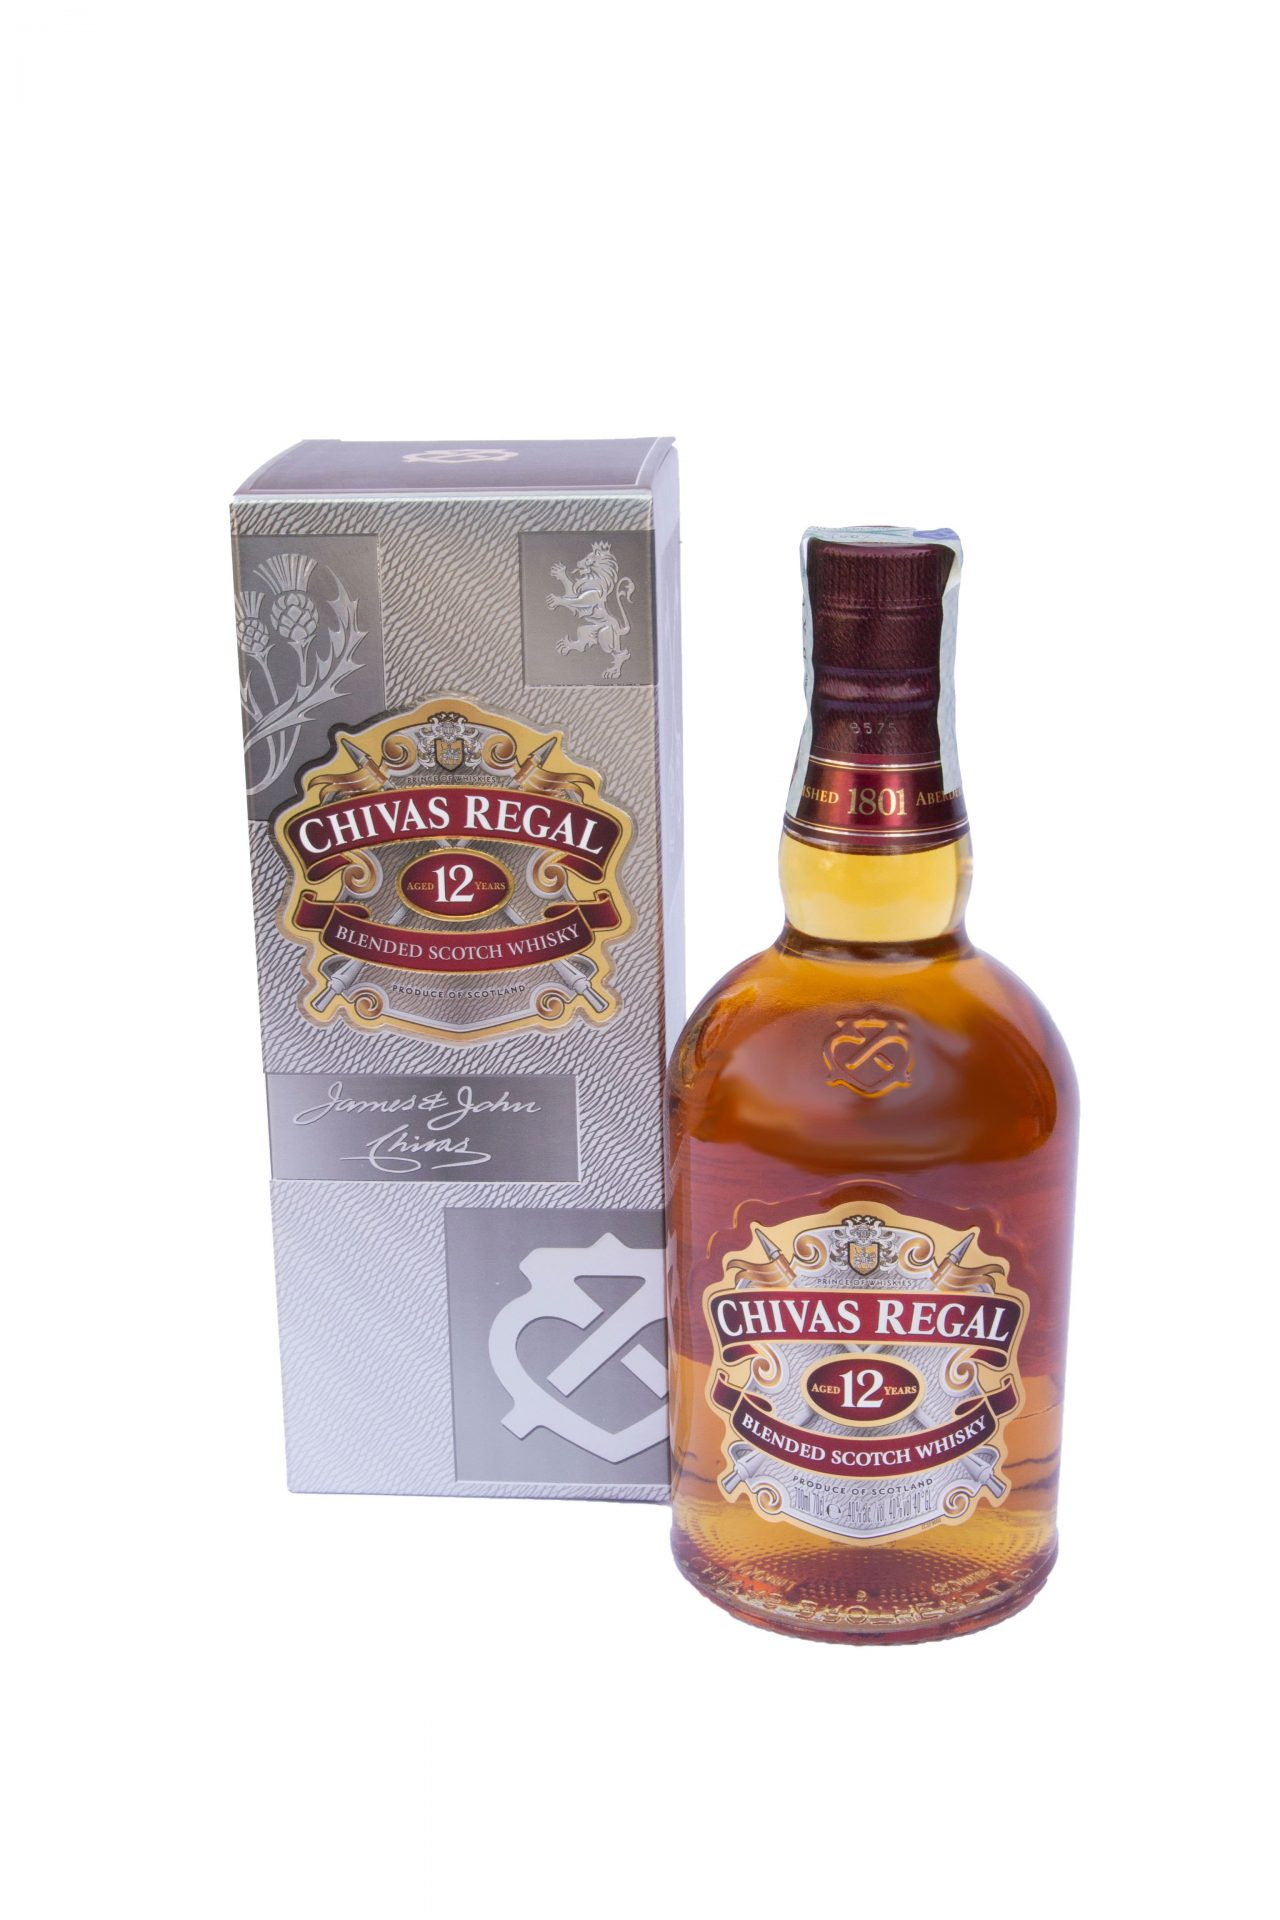 Blended Scotch Whisky 12 years old – Chivas Regal